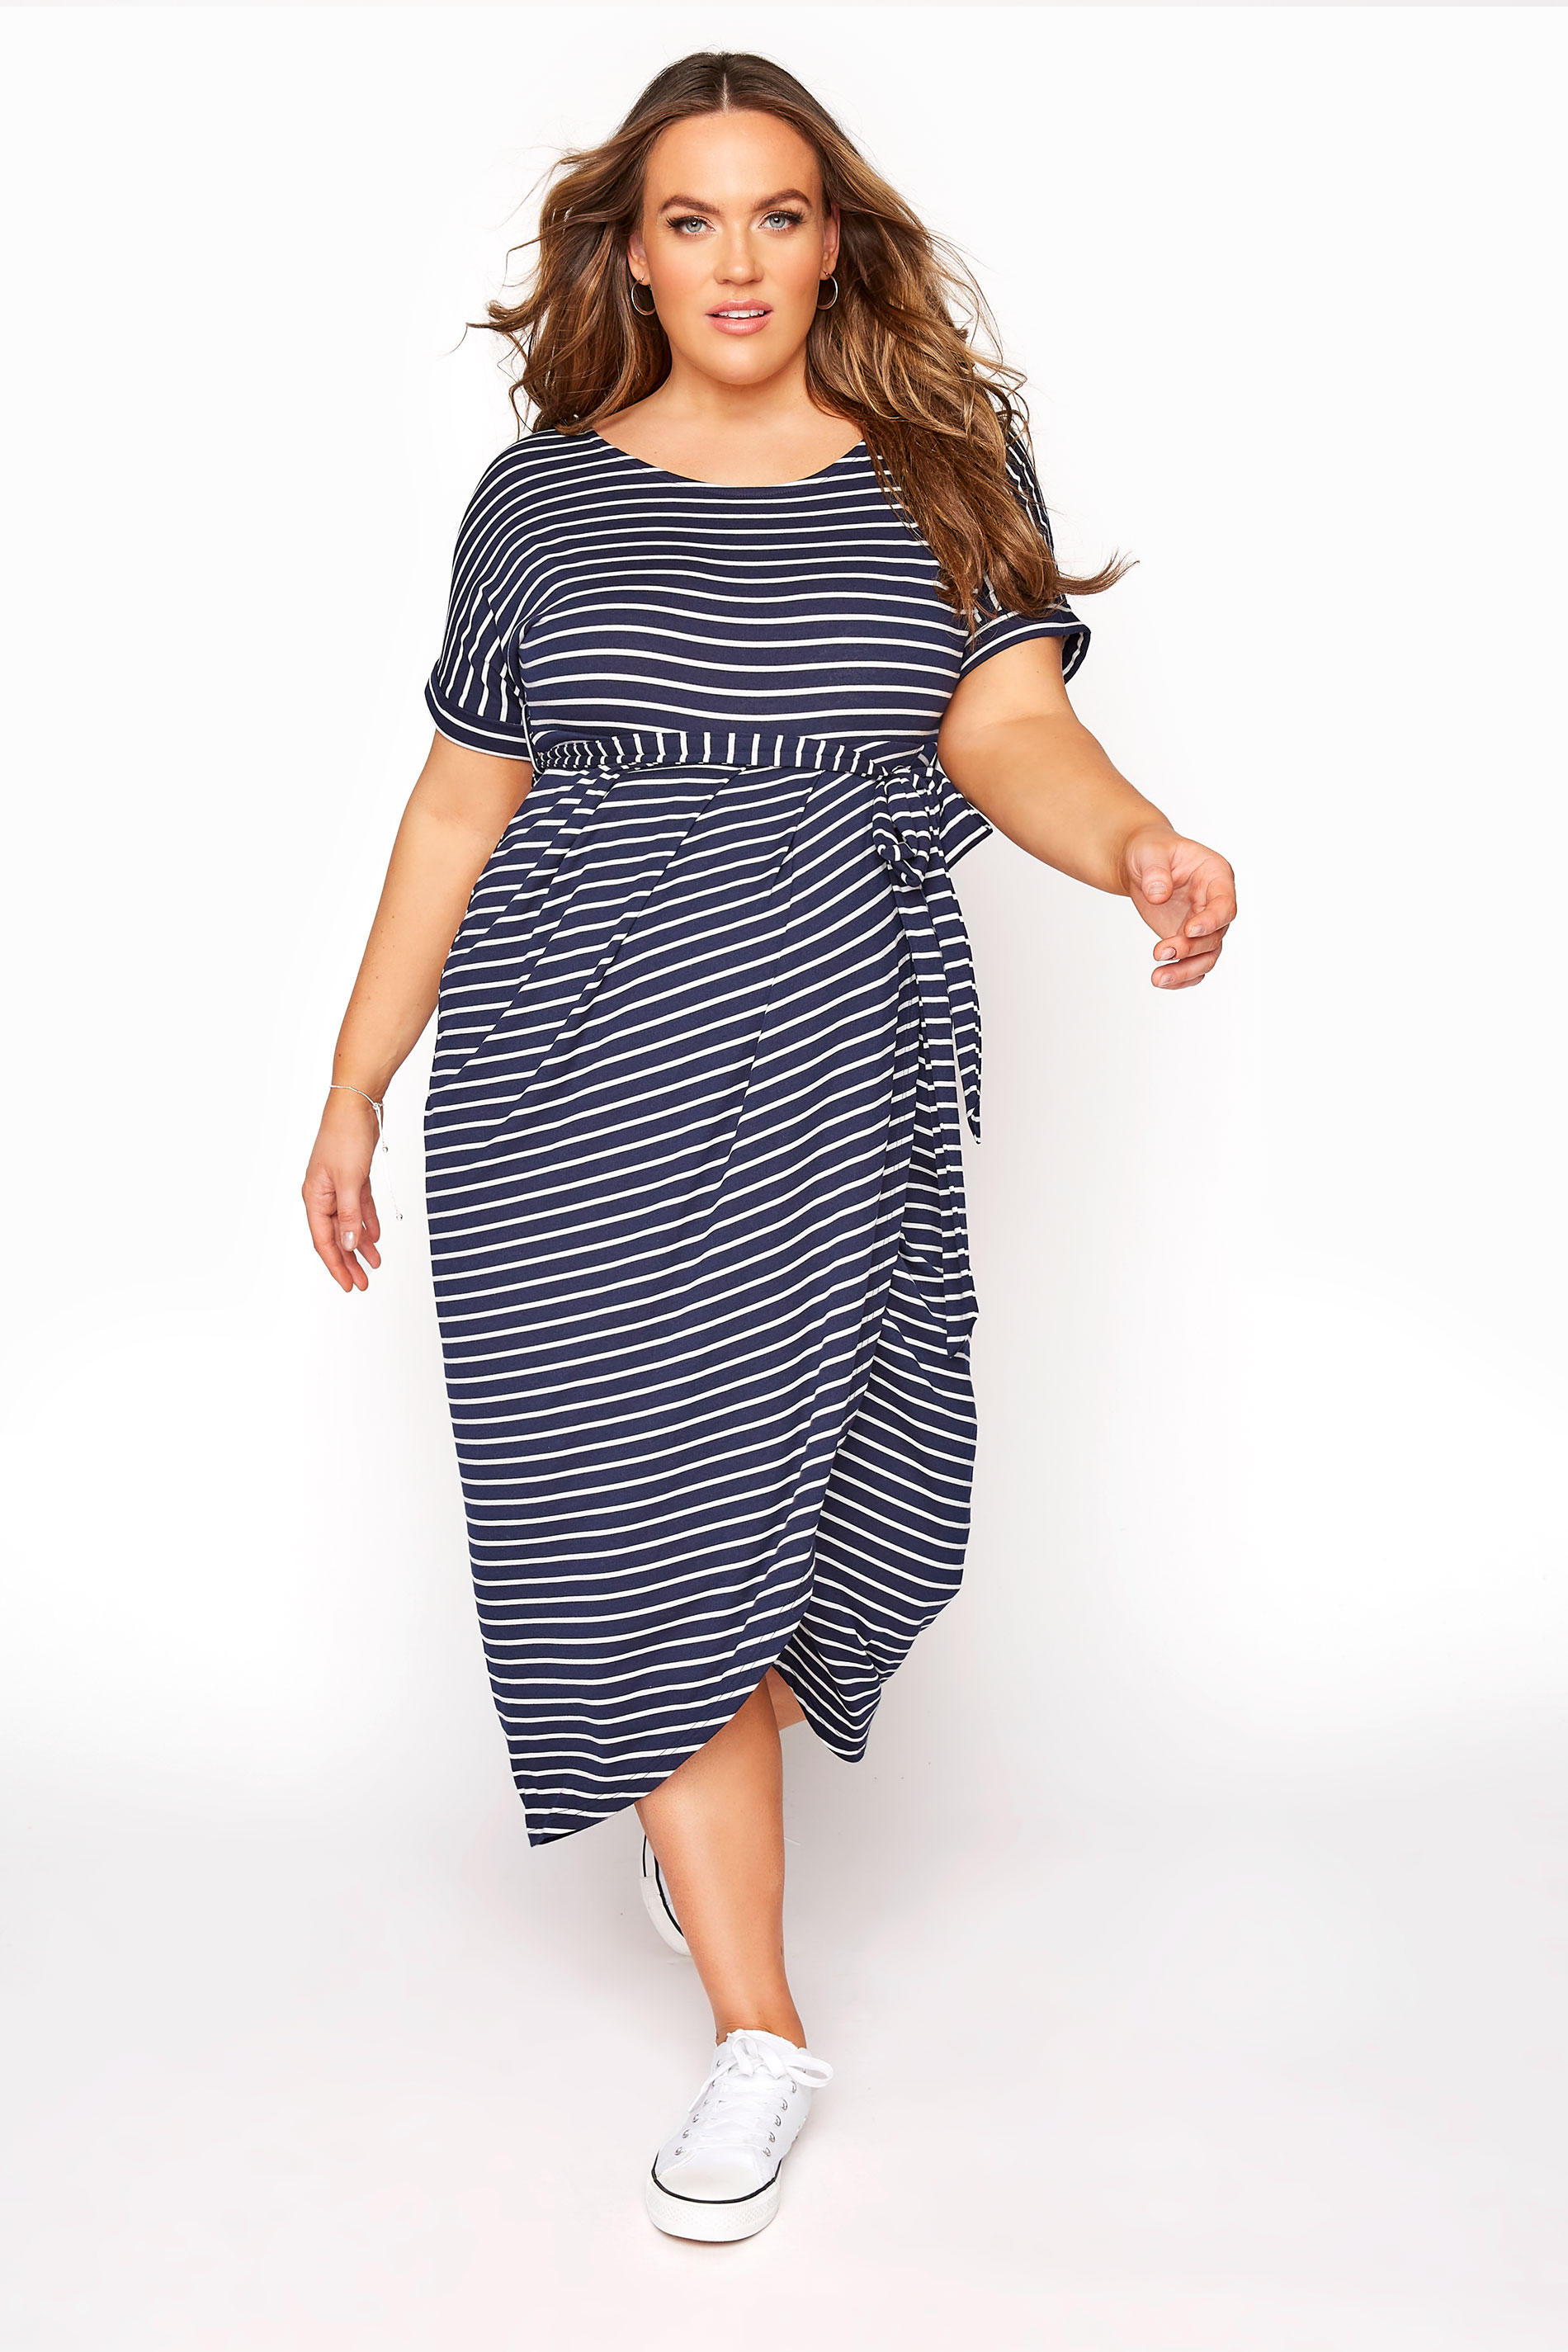 BUMP IT UP MATERNITY Navy & White Stripe Tie Waist Wrap Dress